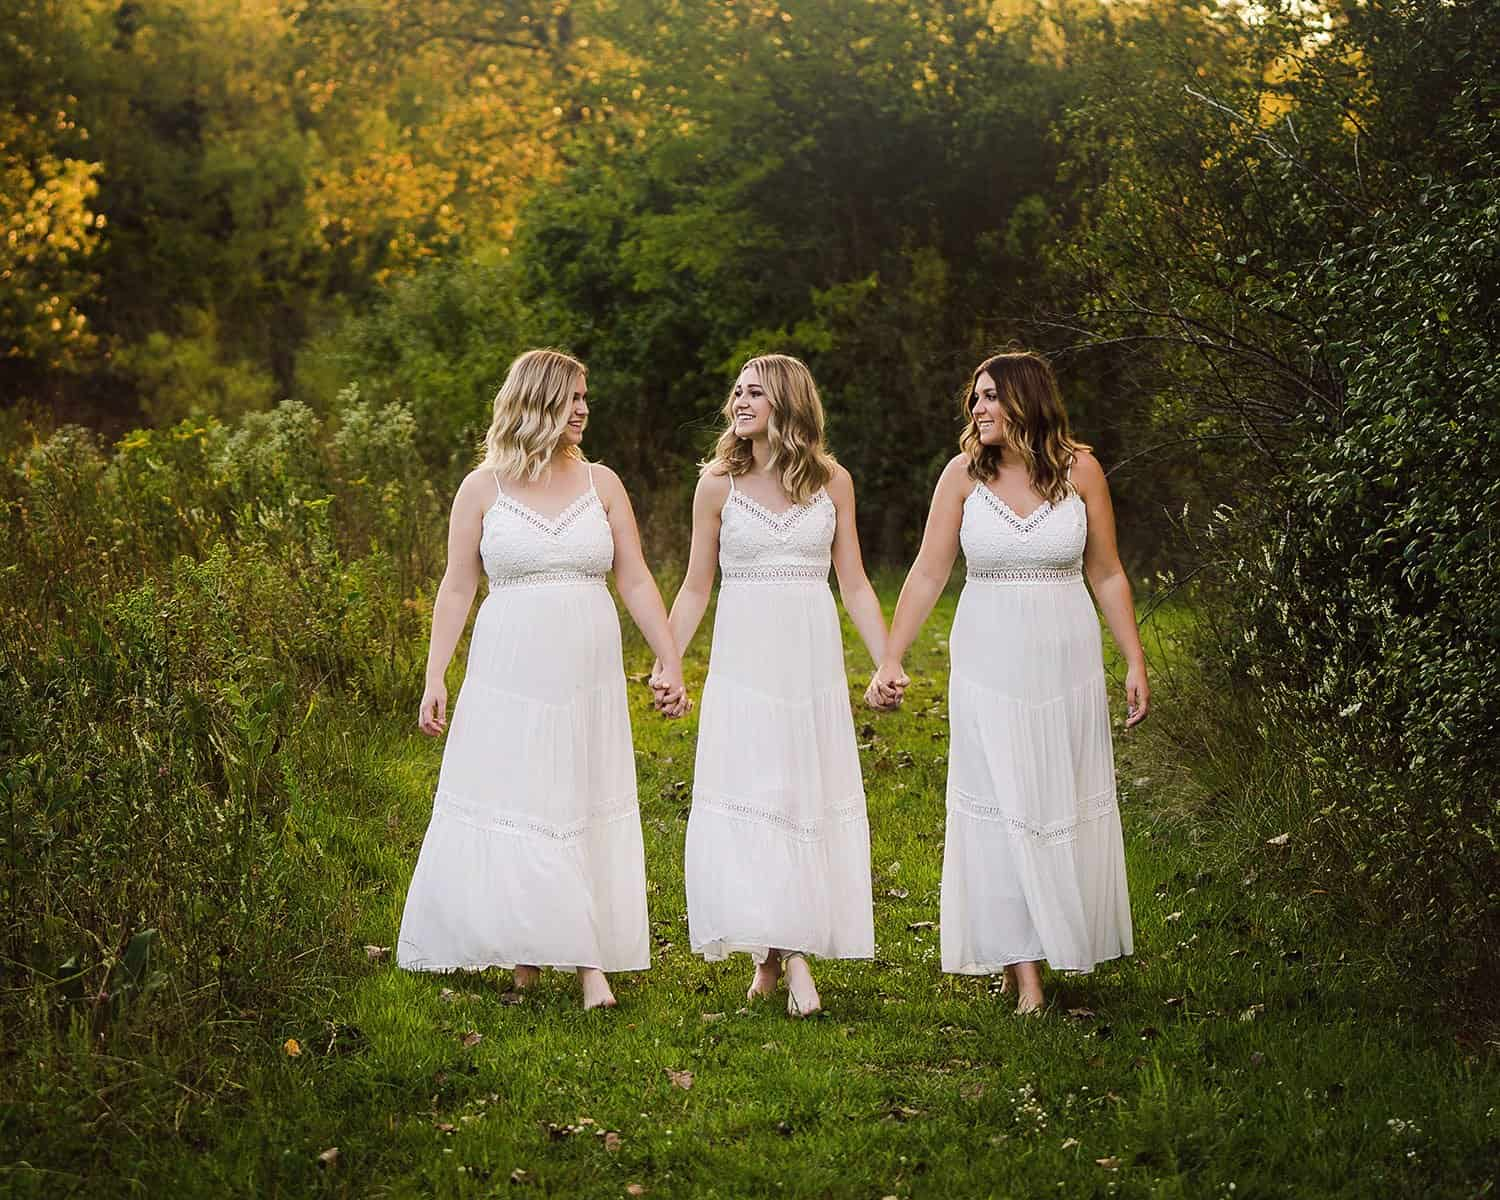 nfocus photos crystal Lake senior photographer triplets Burlington IL senior photo shoot